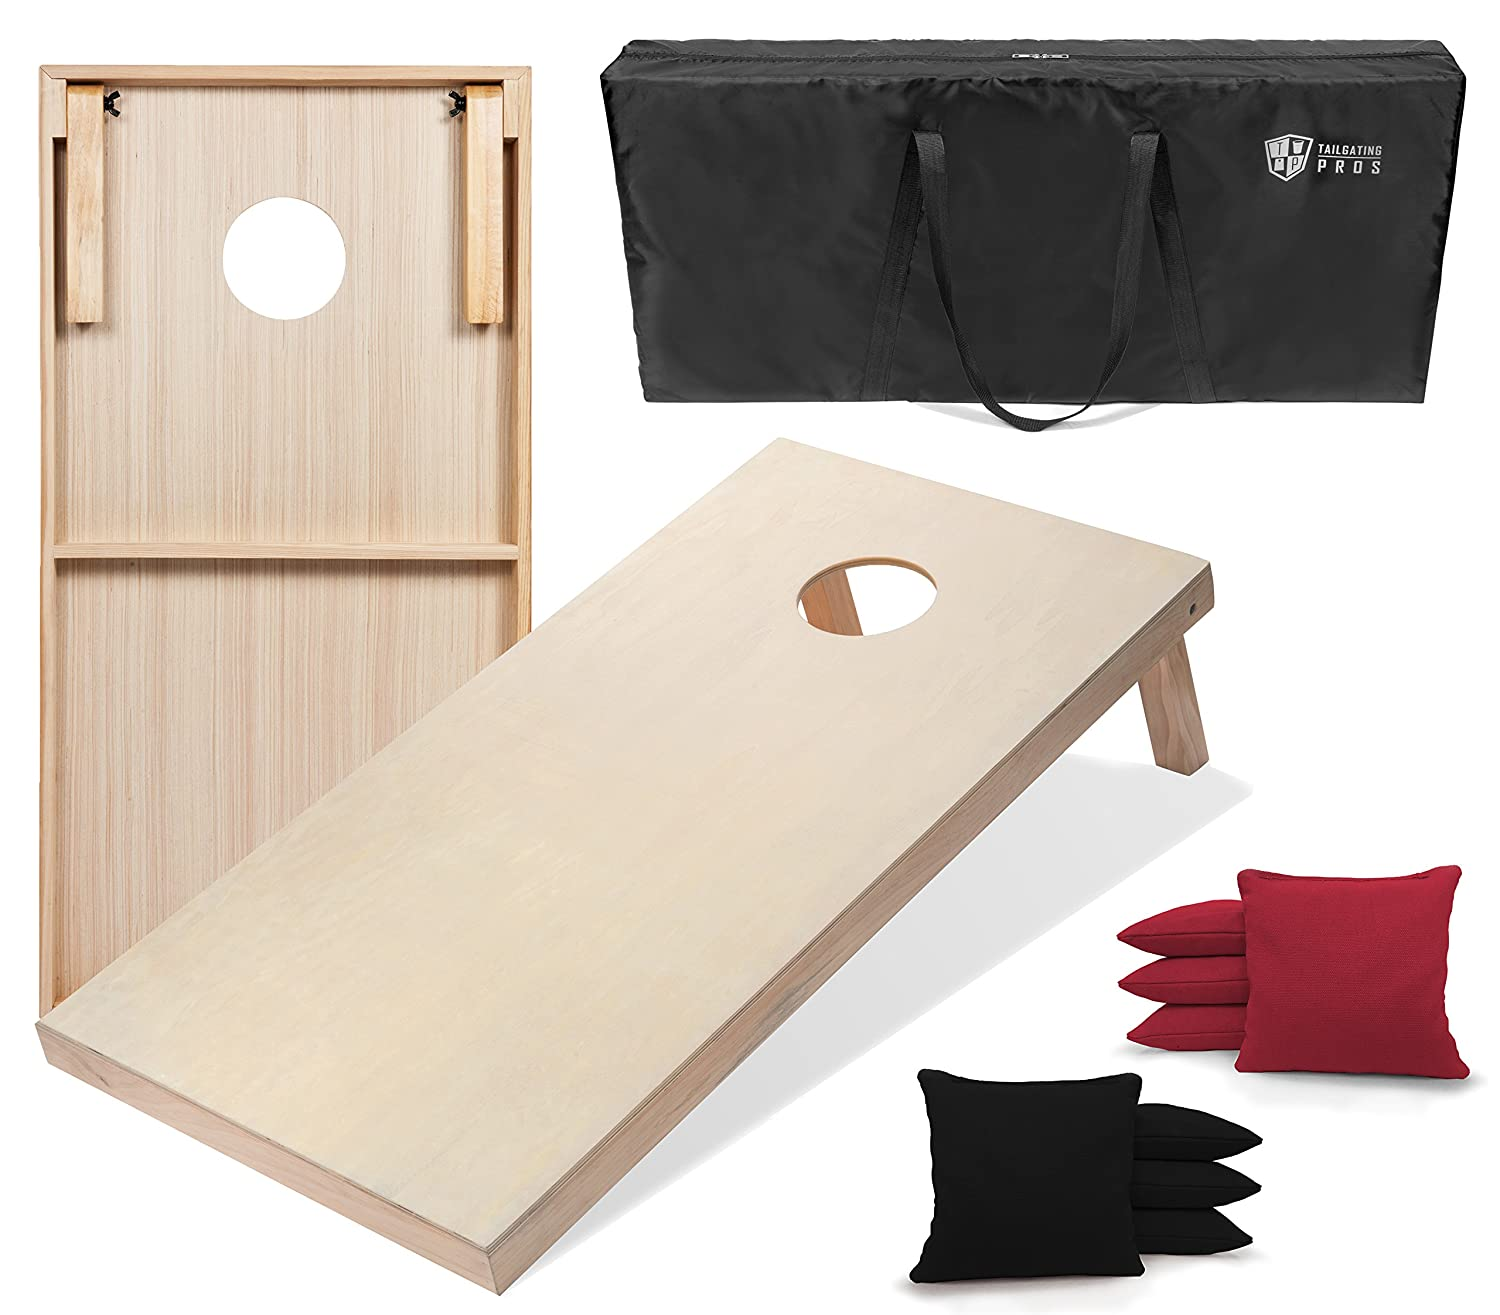 Tailgating Pros 4 ' x2 ' & 3 ' x2 ' CornholeボードW/Carrying Case &のセット8 Cornhole Bags (You Pickカラー)25バッグカラー。 B07BR69R85 3'x2' Boards|Black/ Scarlet Black/ Scarlet 3'x2' Boards